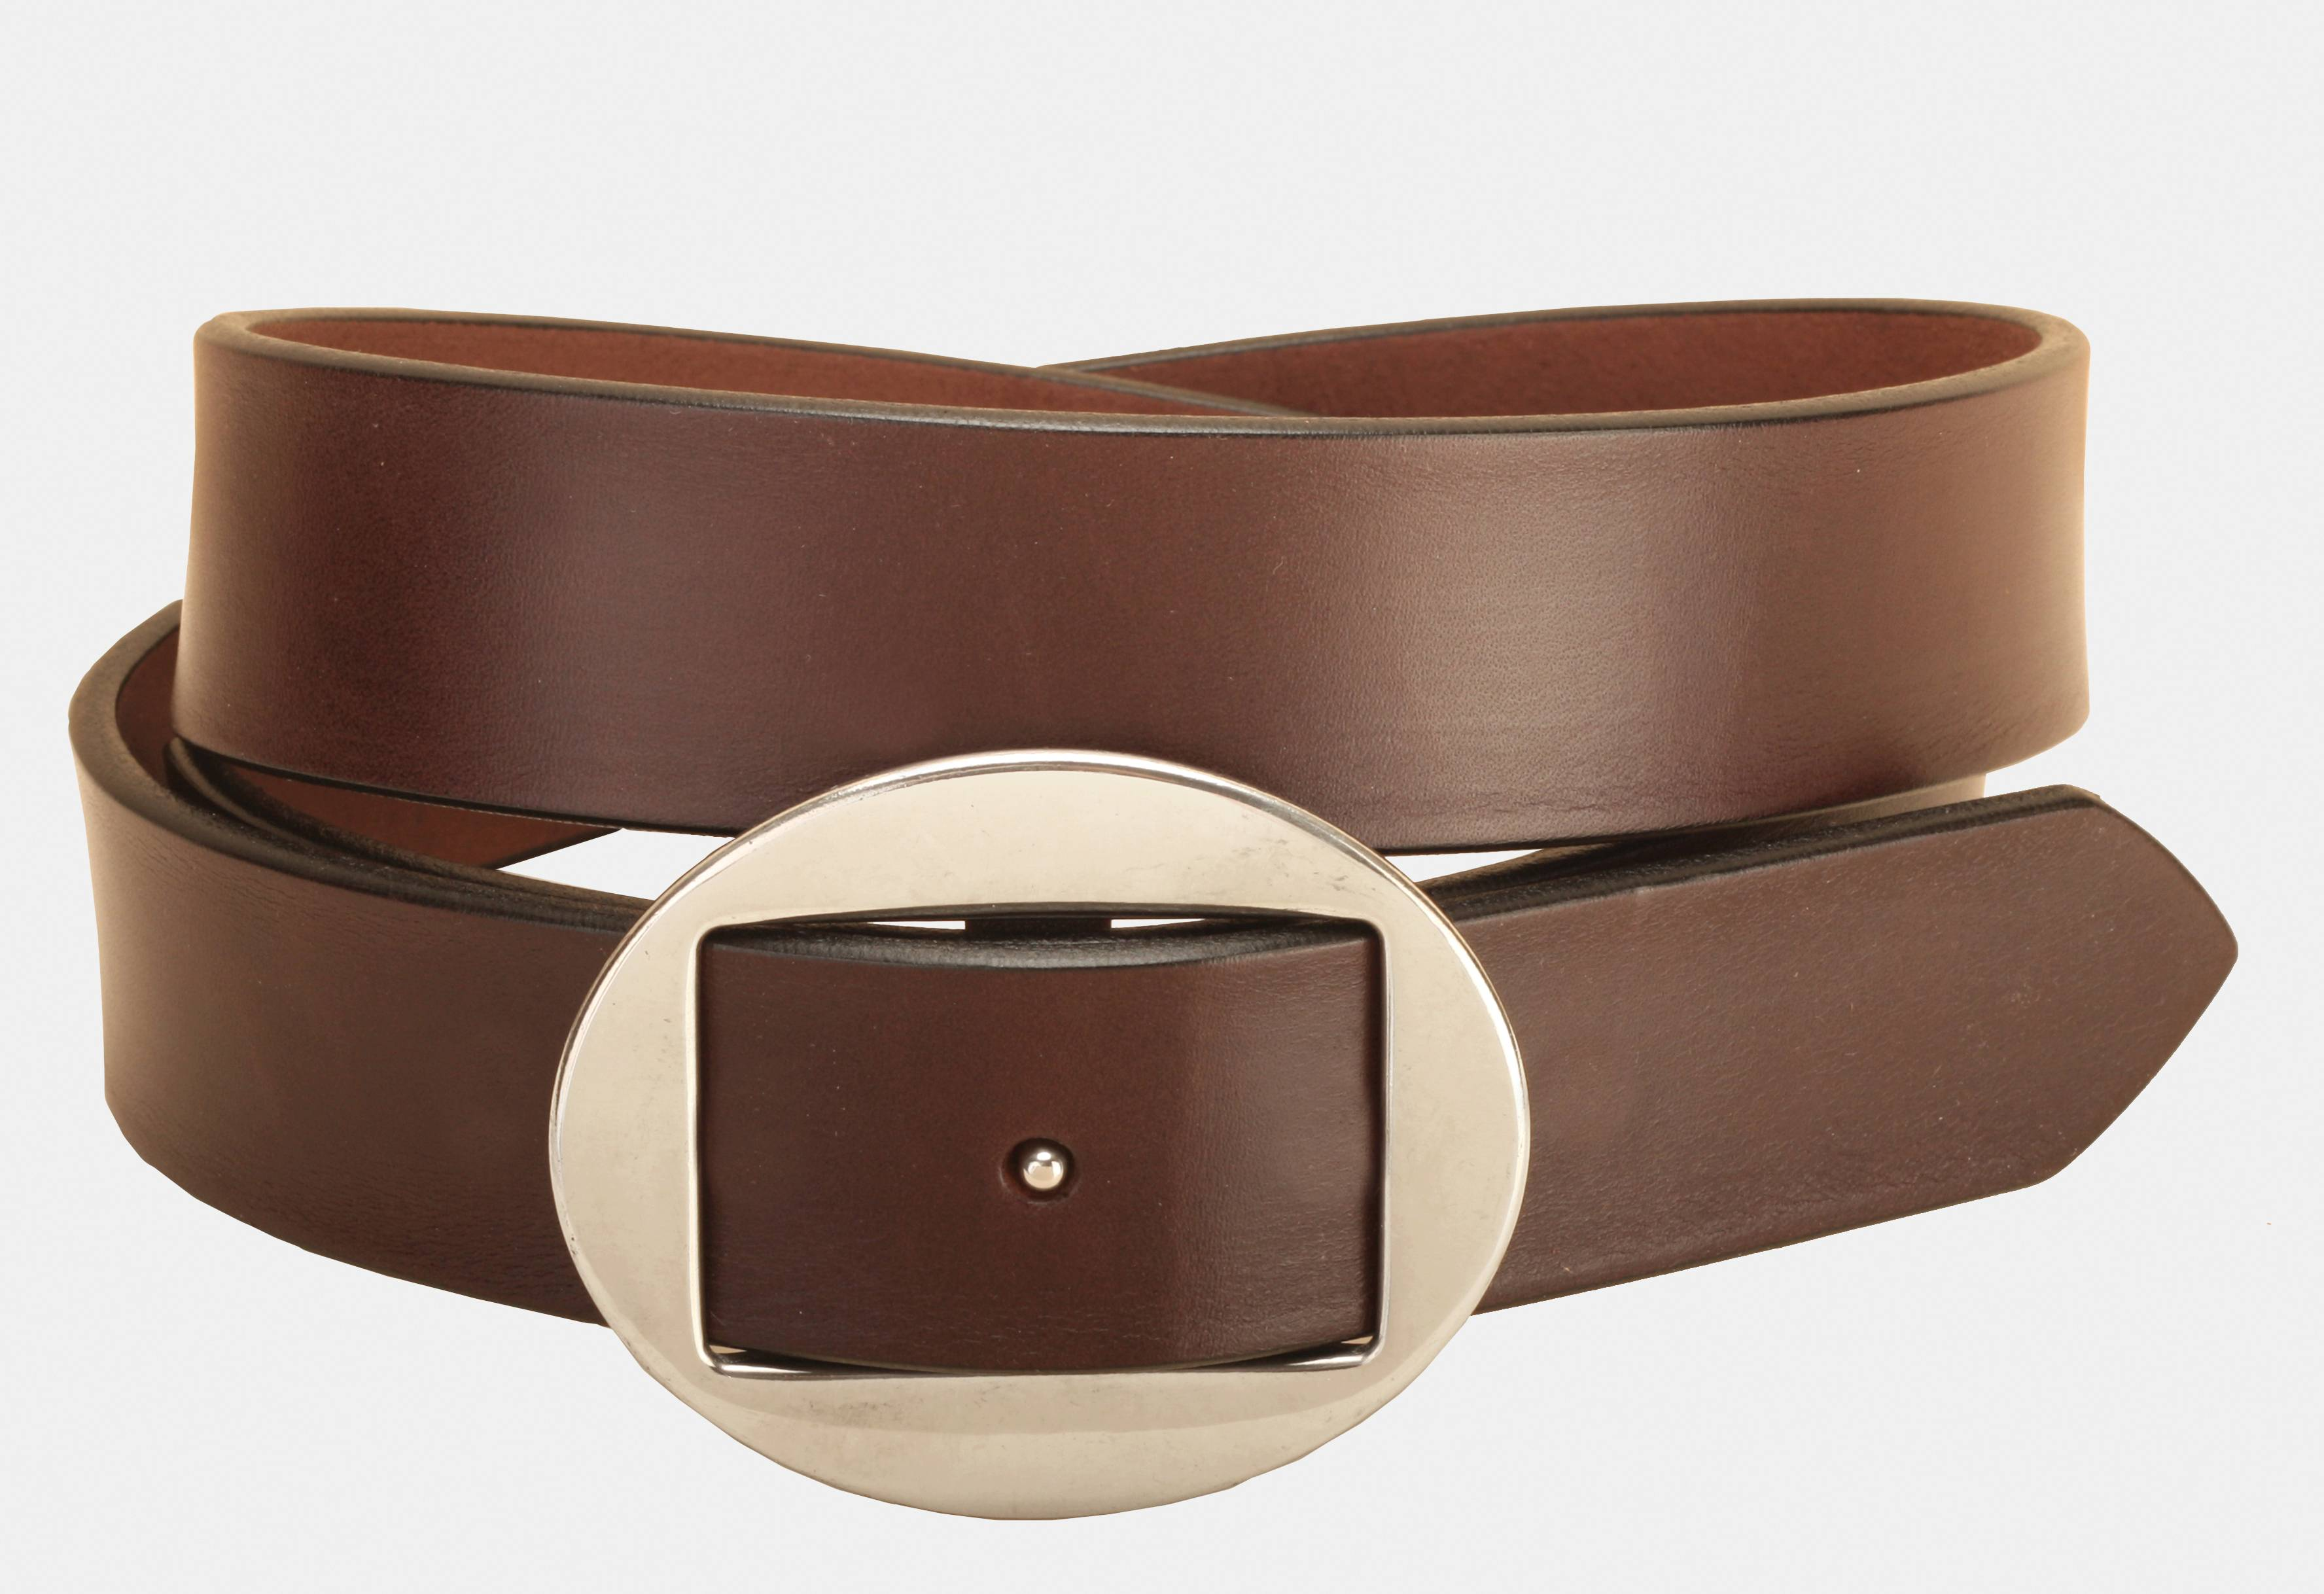 Tory Leather Plain Leather Belt with Oval Conway Buckle